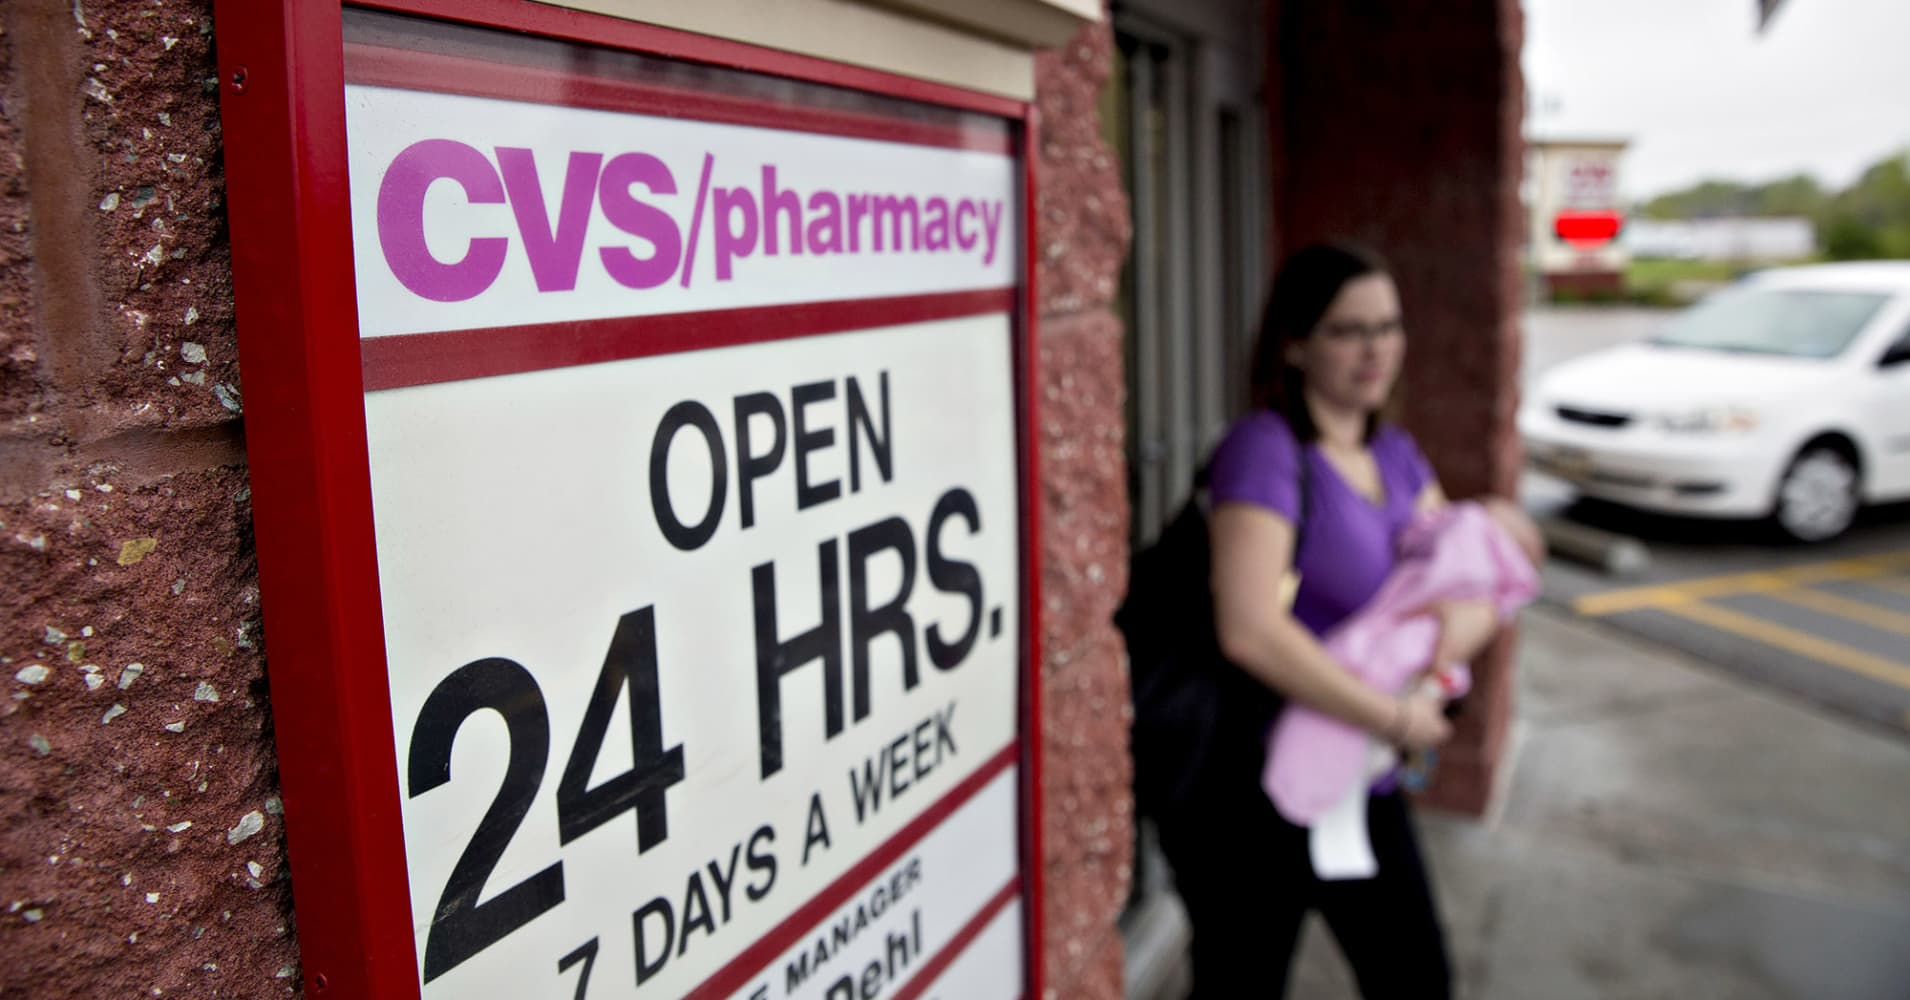 CVS pledges $100 million for community health programs